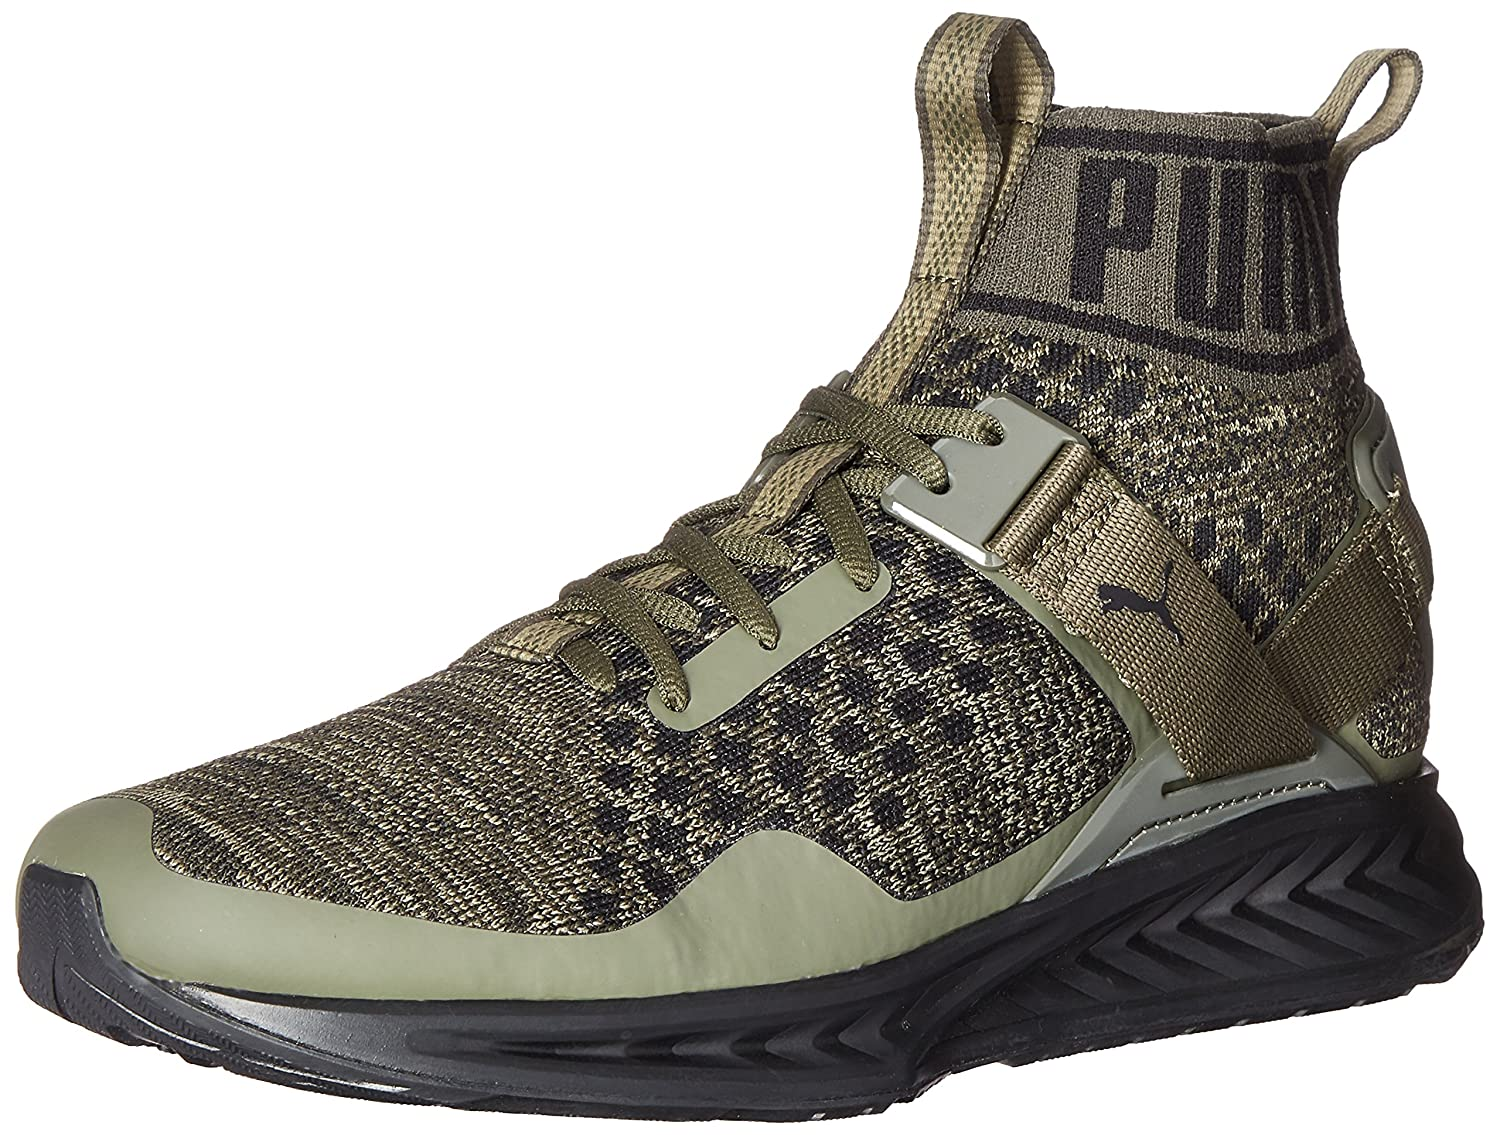 hot sale online 6646e 3c16d PUMA Men's Ignite Evoknit Cross-Trainer Shoe